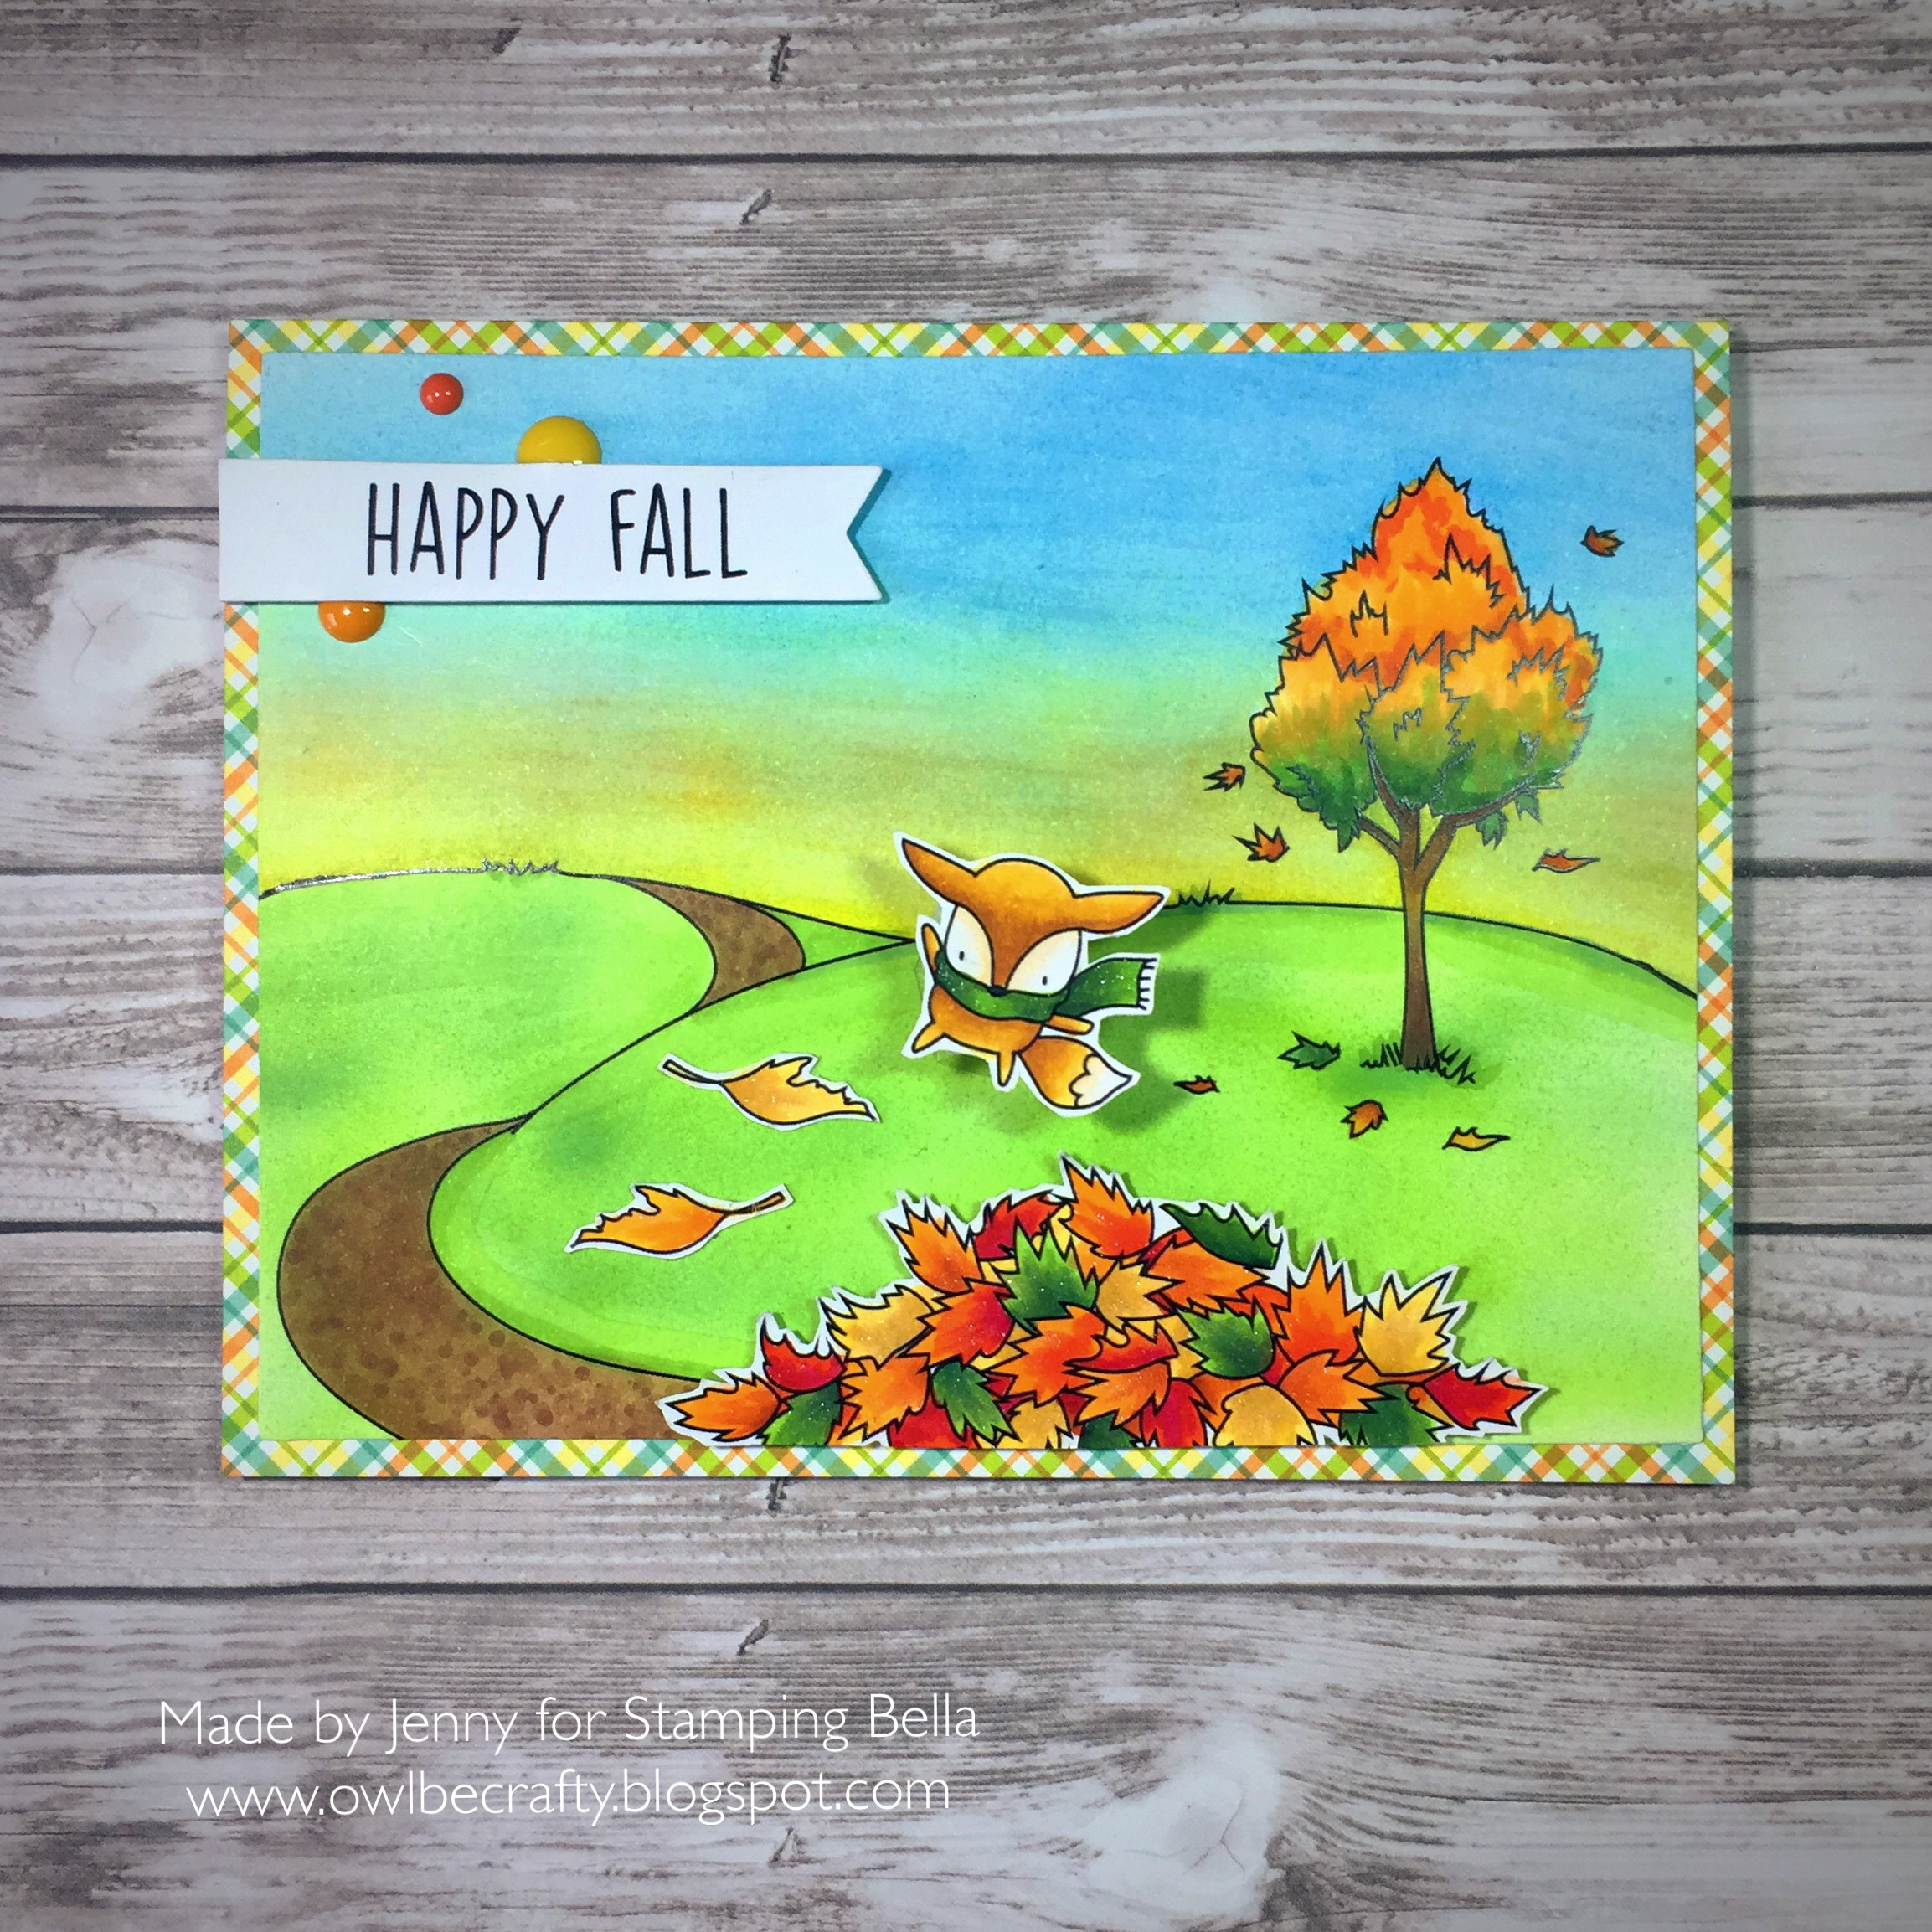 Stamping Bella SNEAK PEEK DAY 2 : LITTLE BITS NATURE COLLECTION rubber stamp, FALL BACKDROP RUBBER STAMP, FALL SENTIMENTS rubber stamp. Card by JENNY BORDEAUX